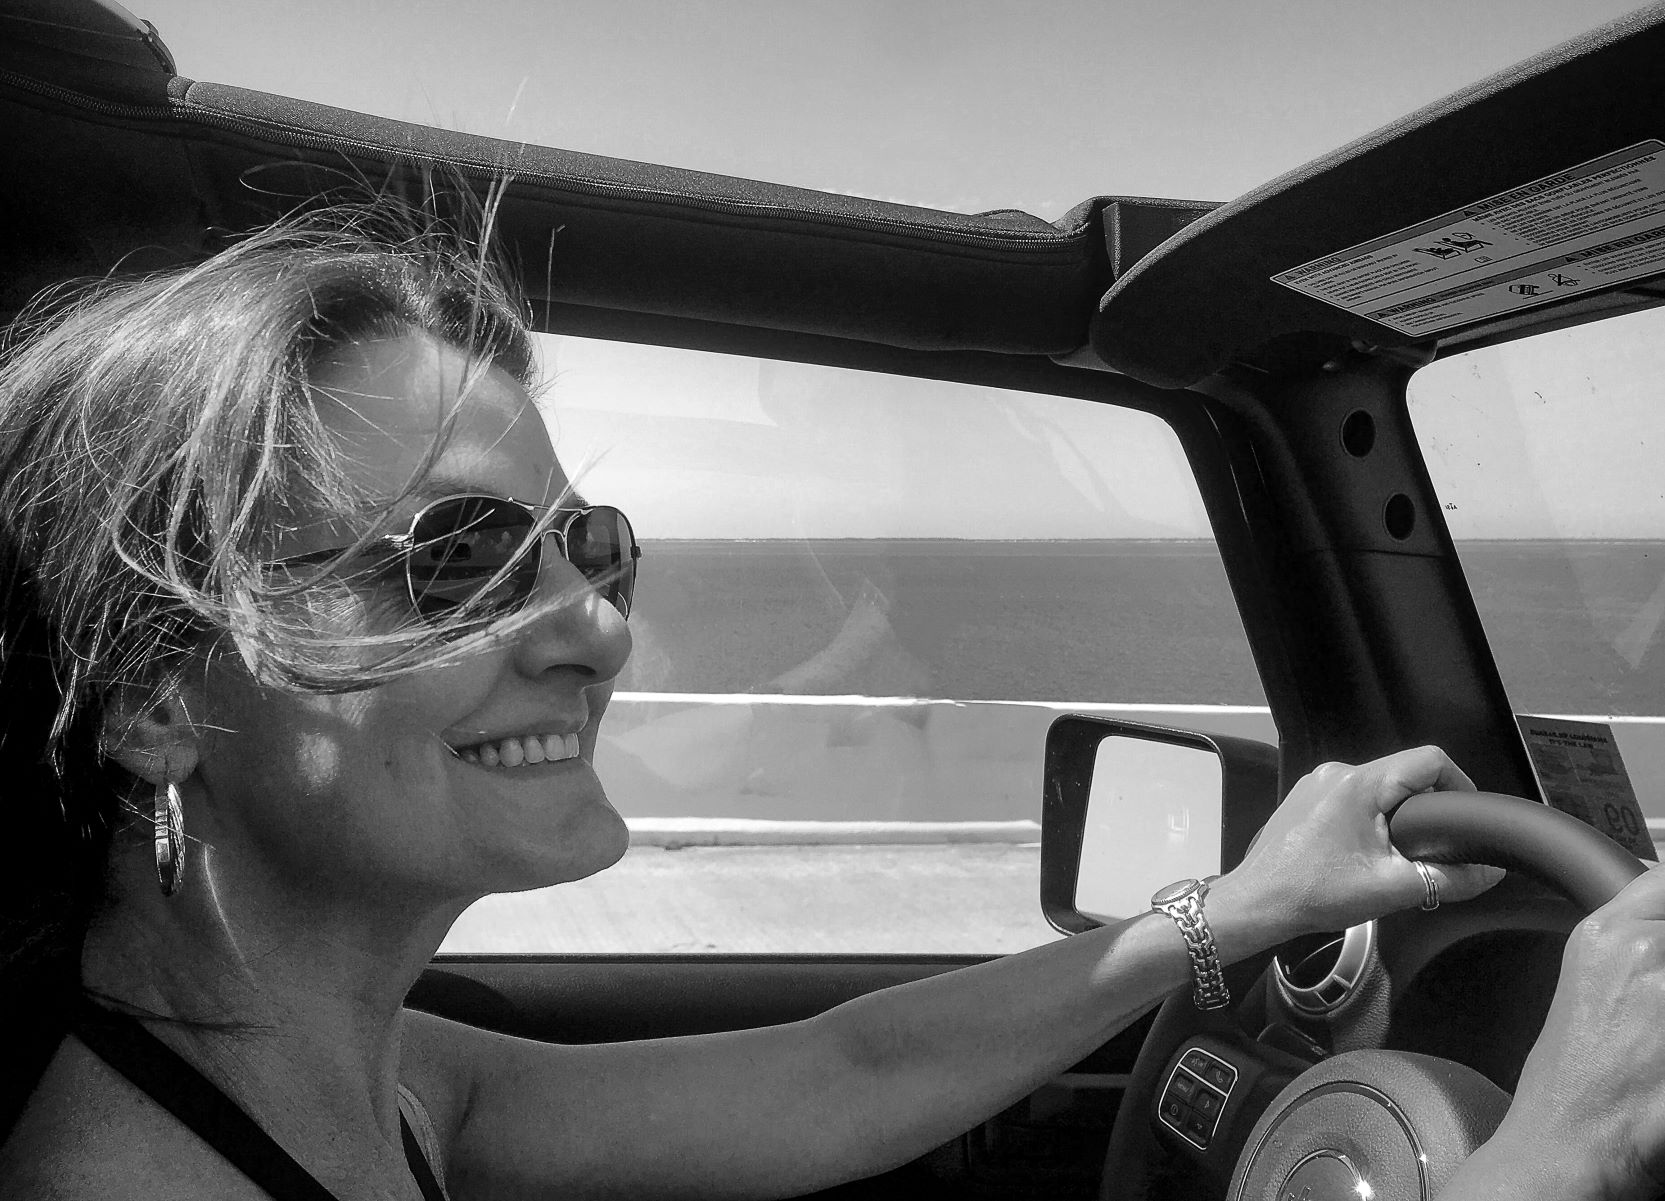 Carole Dupre driving her Jeep Wrangler